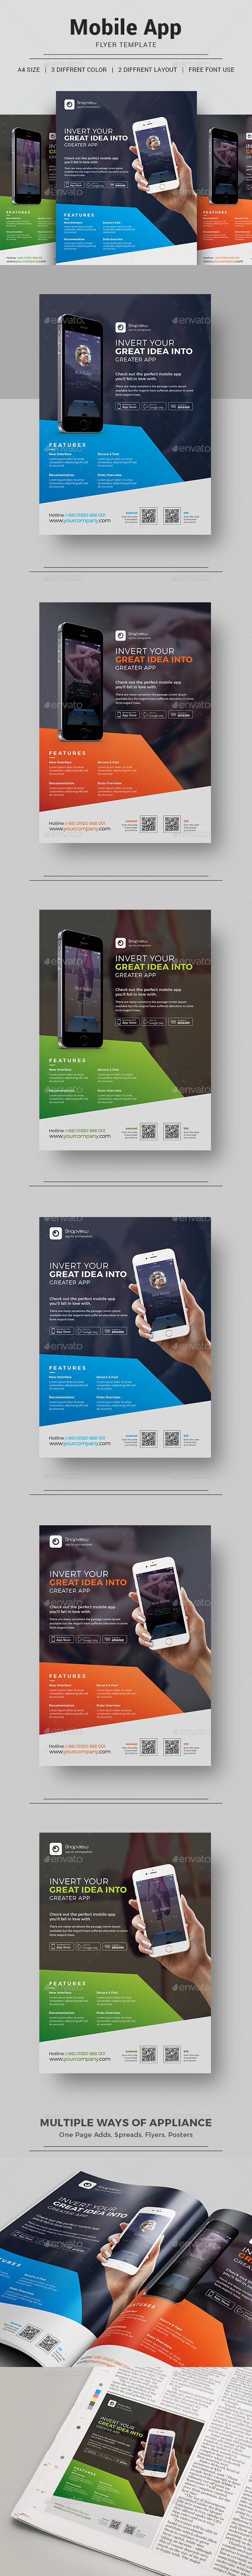 App Promotion Flyer Template PSD. Download here: https://graphicriver.net/item/app-promotion-flyer/17408425?ref=ksioks